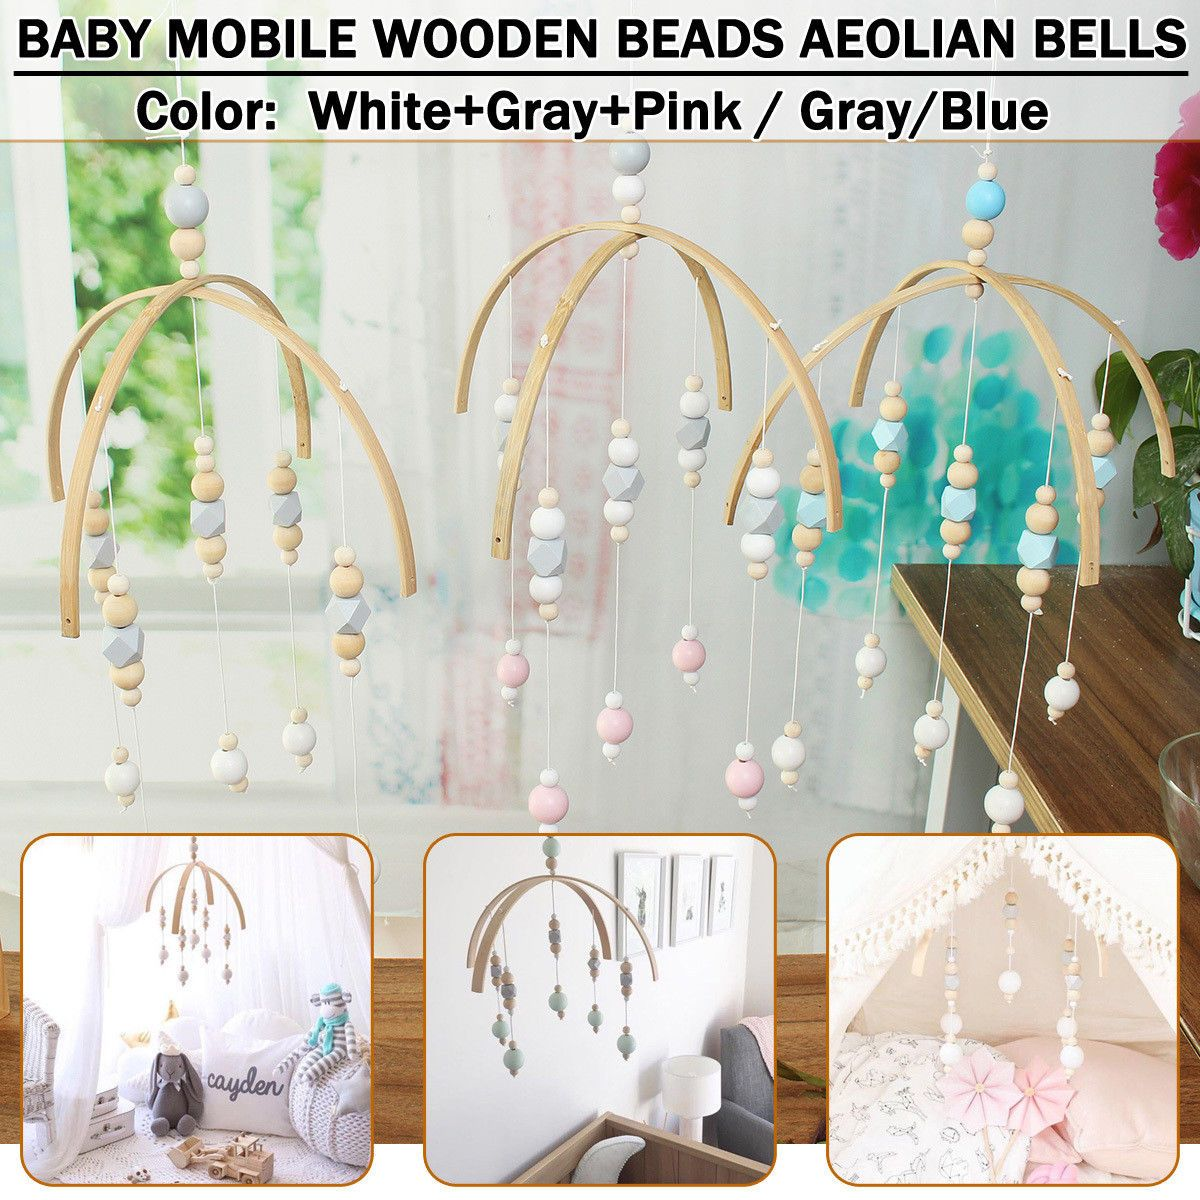 Baby Crib Bed Bell Wooden Beads Mobile Holder Arm Bracket Wind-up DIY Toy Gift